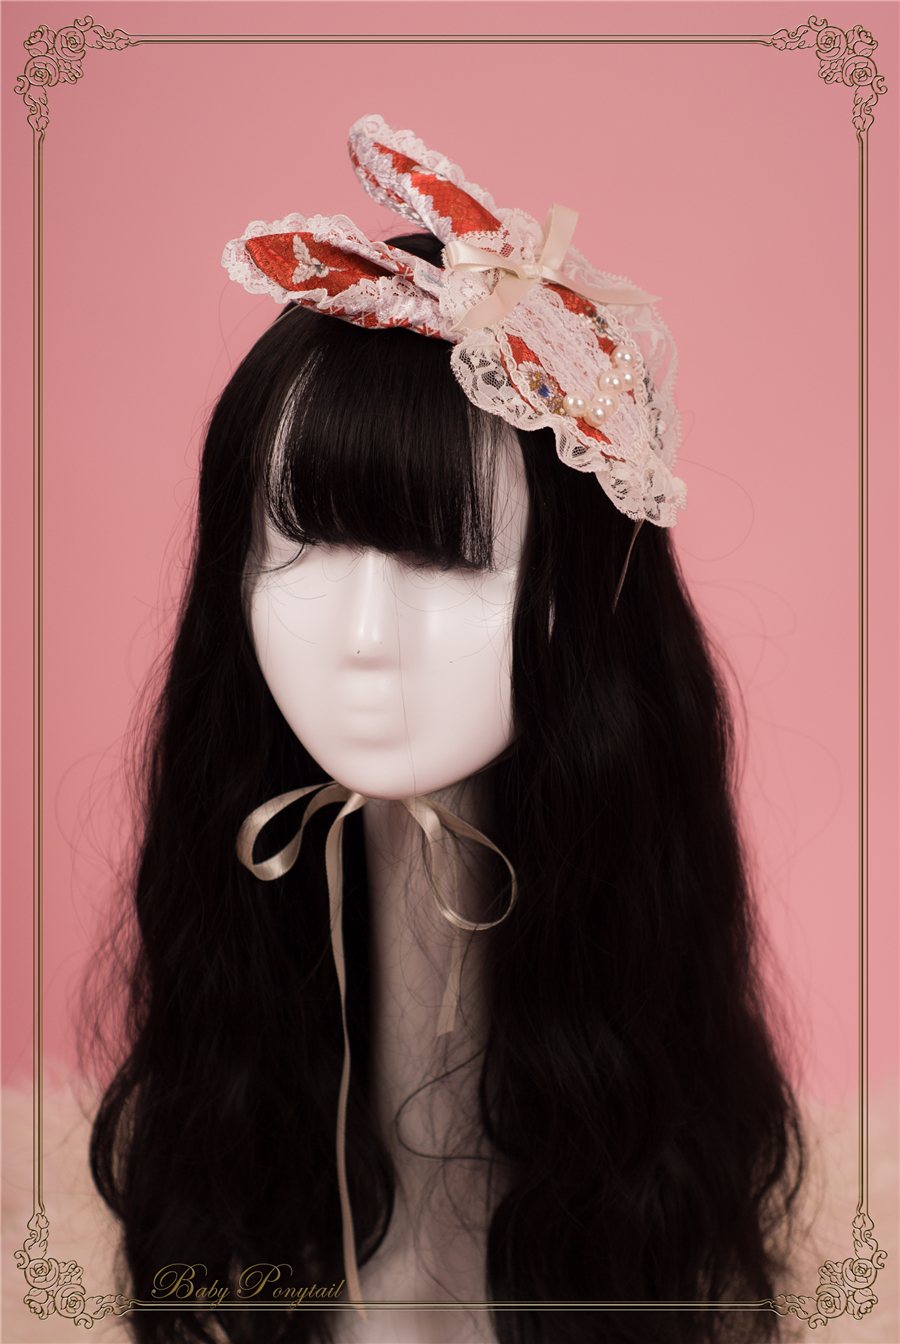 BabyPonytail_Stock Photo_My Favorite Companion_Bunny Head Dress_16.jpg